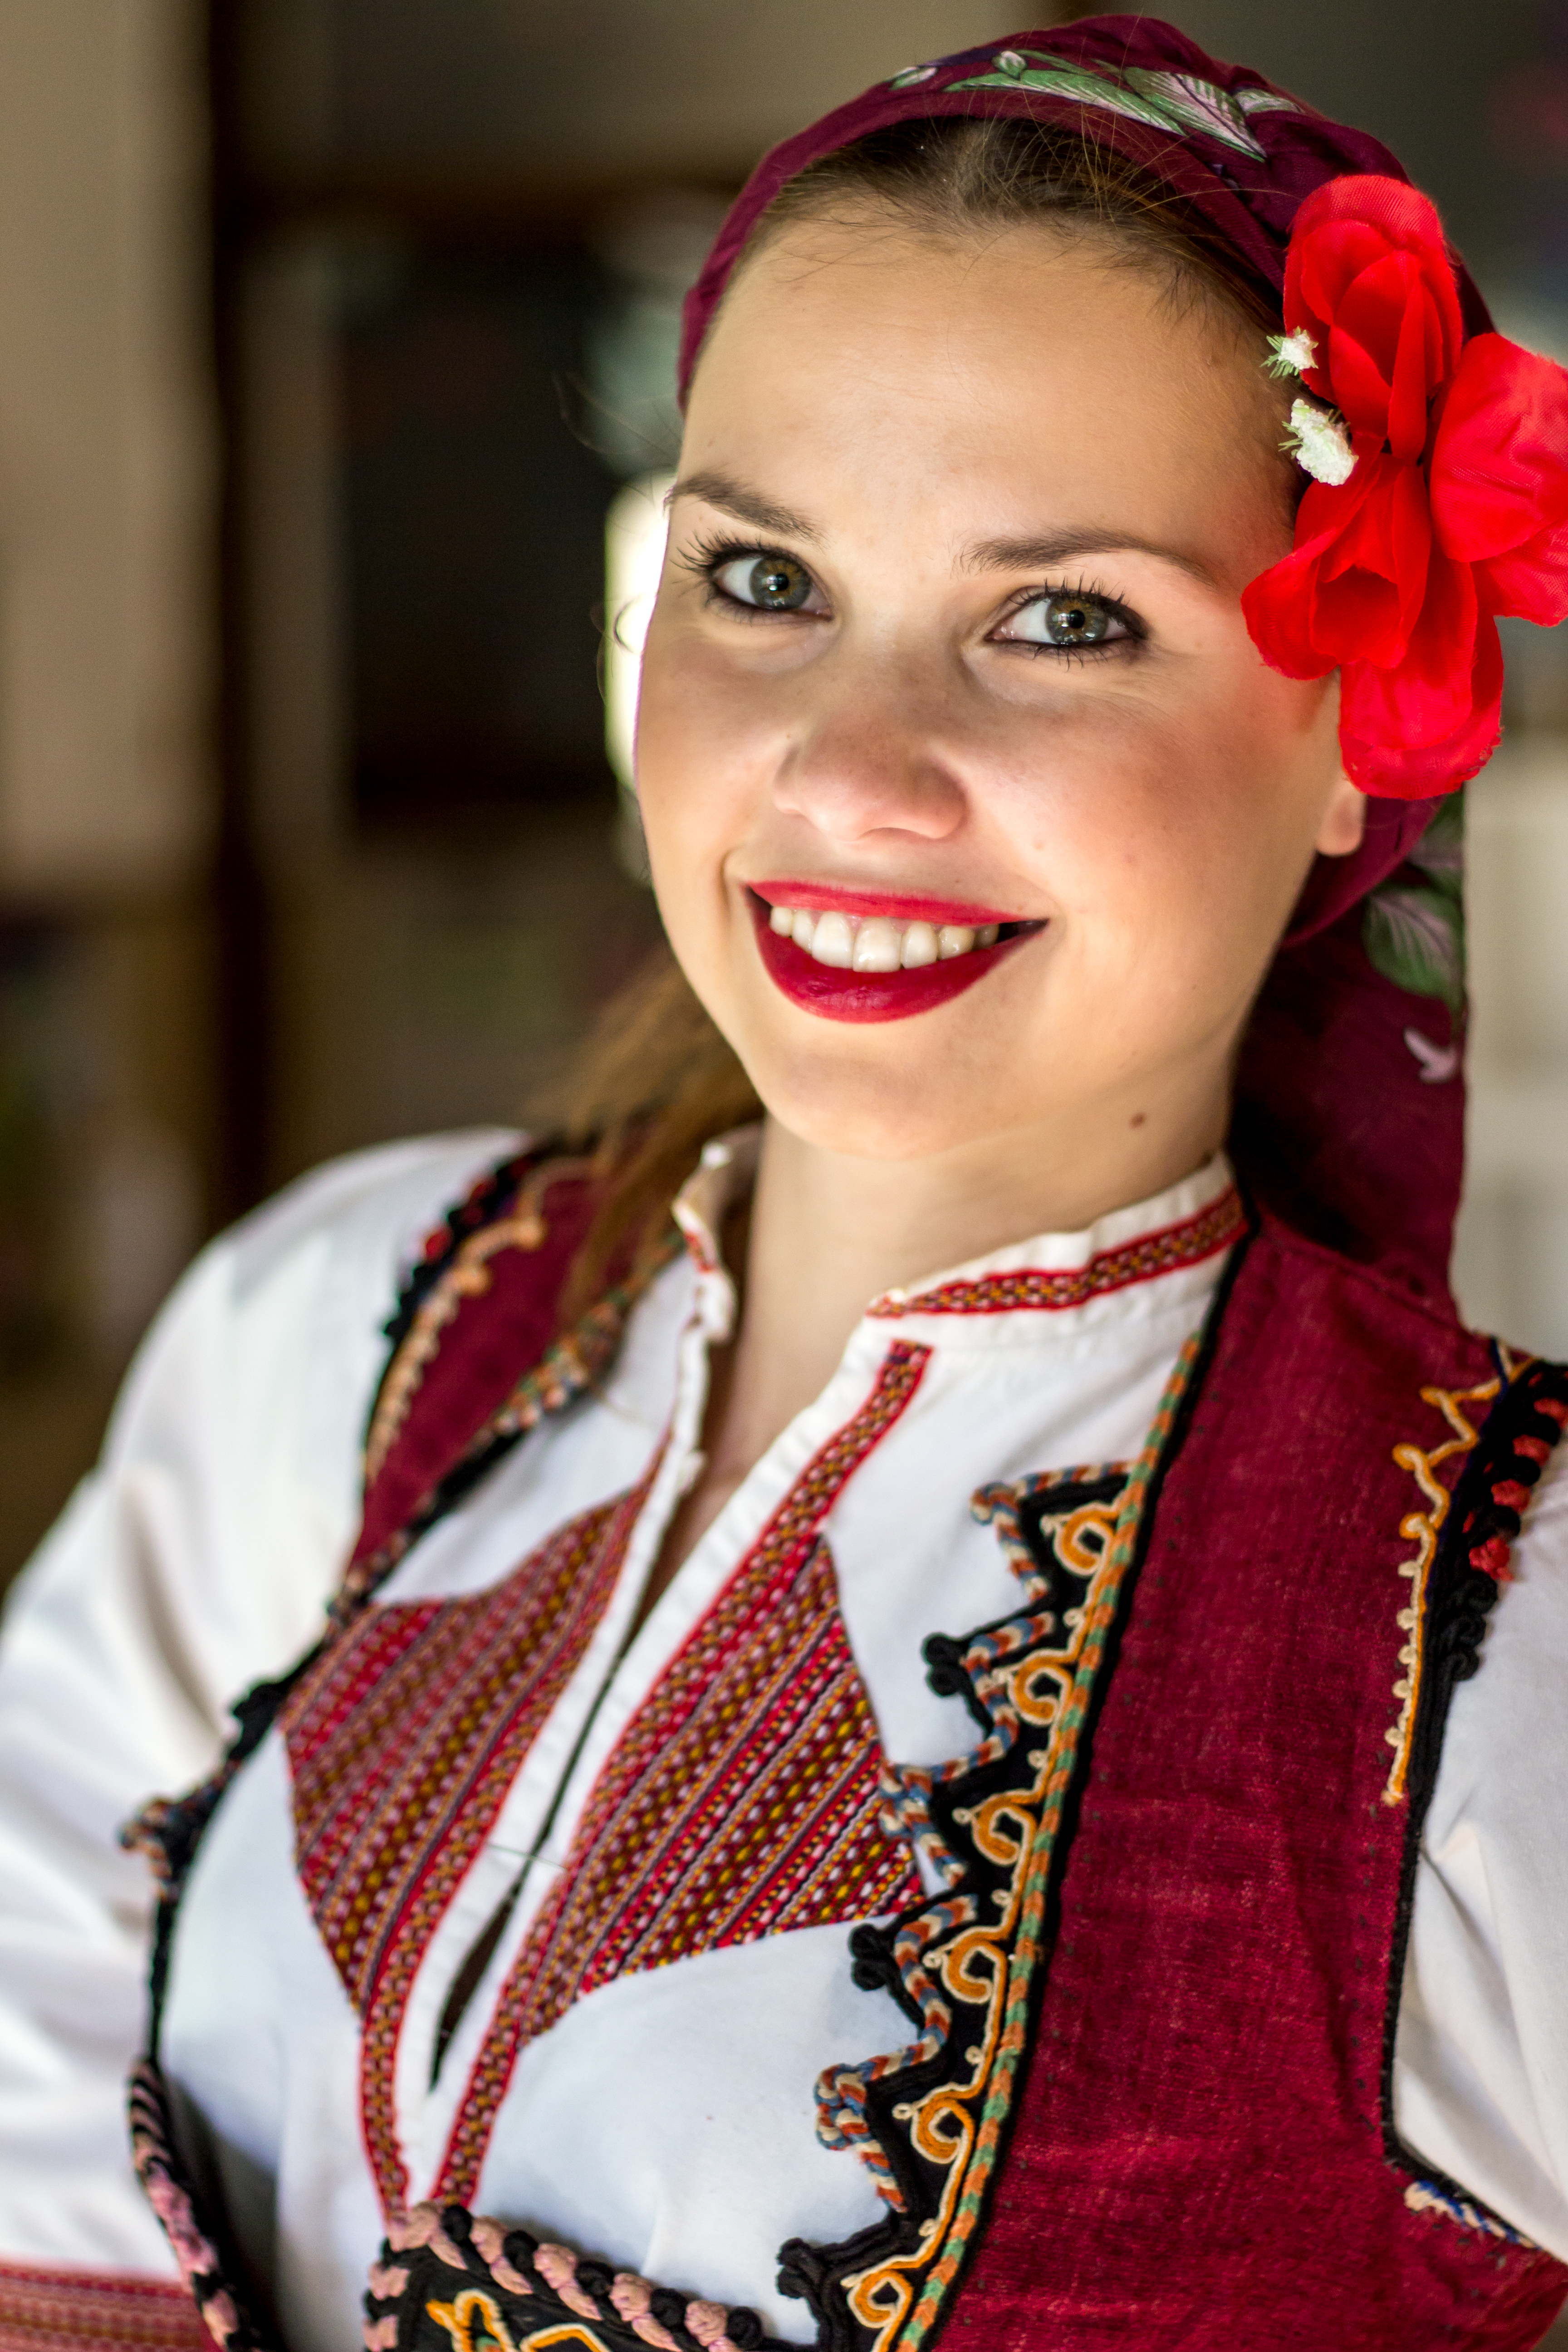 macedonian girl